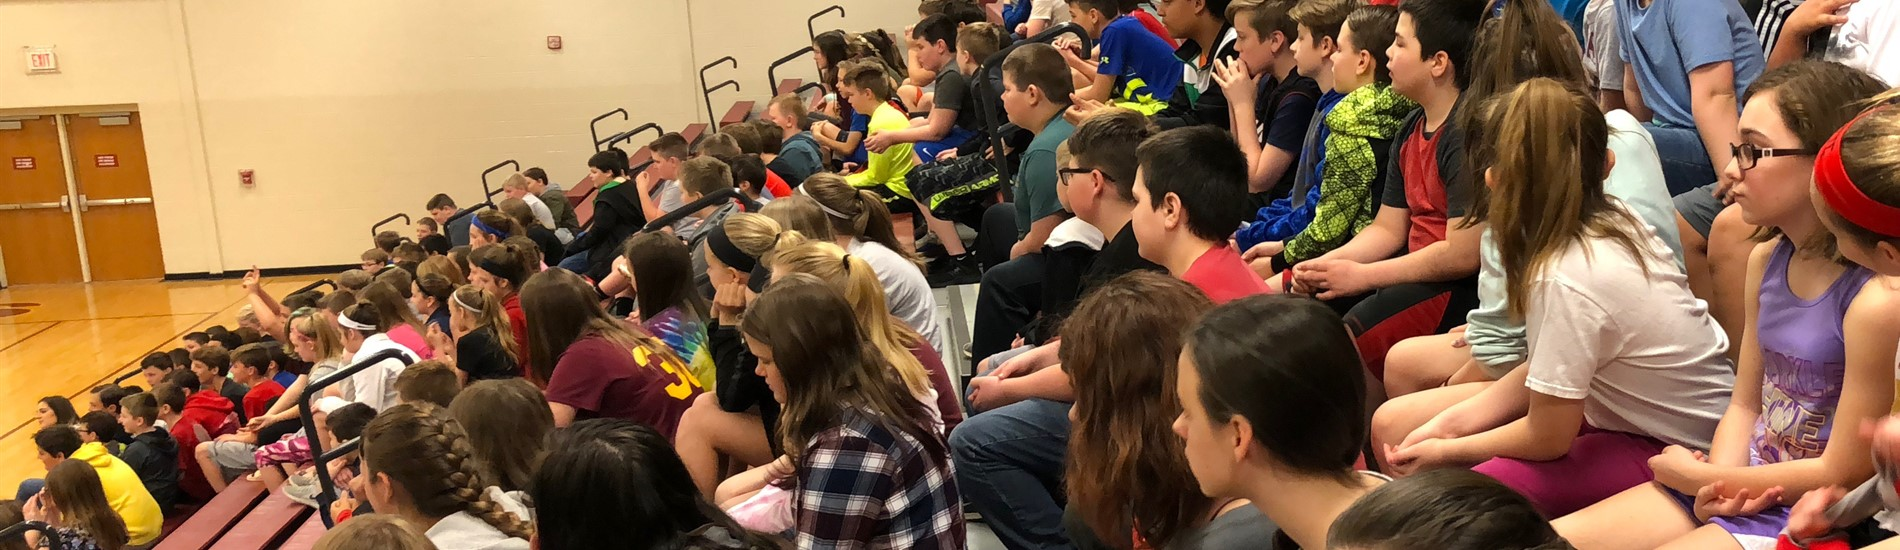 Ross Middle School students watching a dodgeball tournament in the gym.